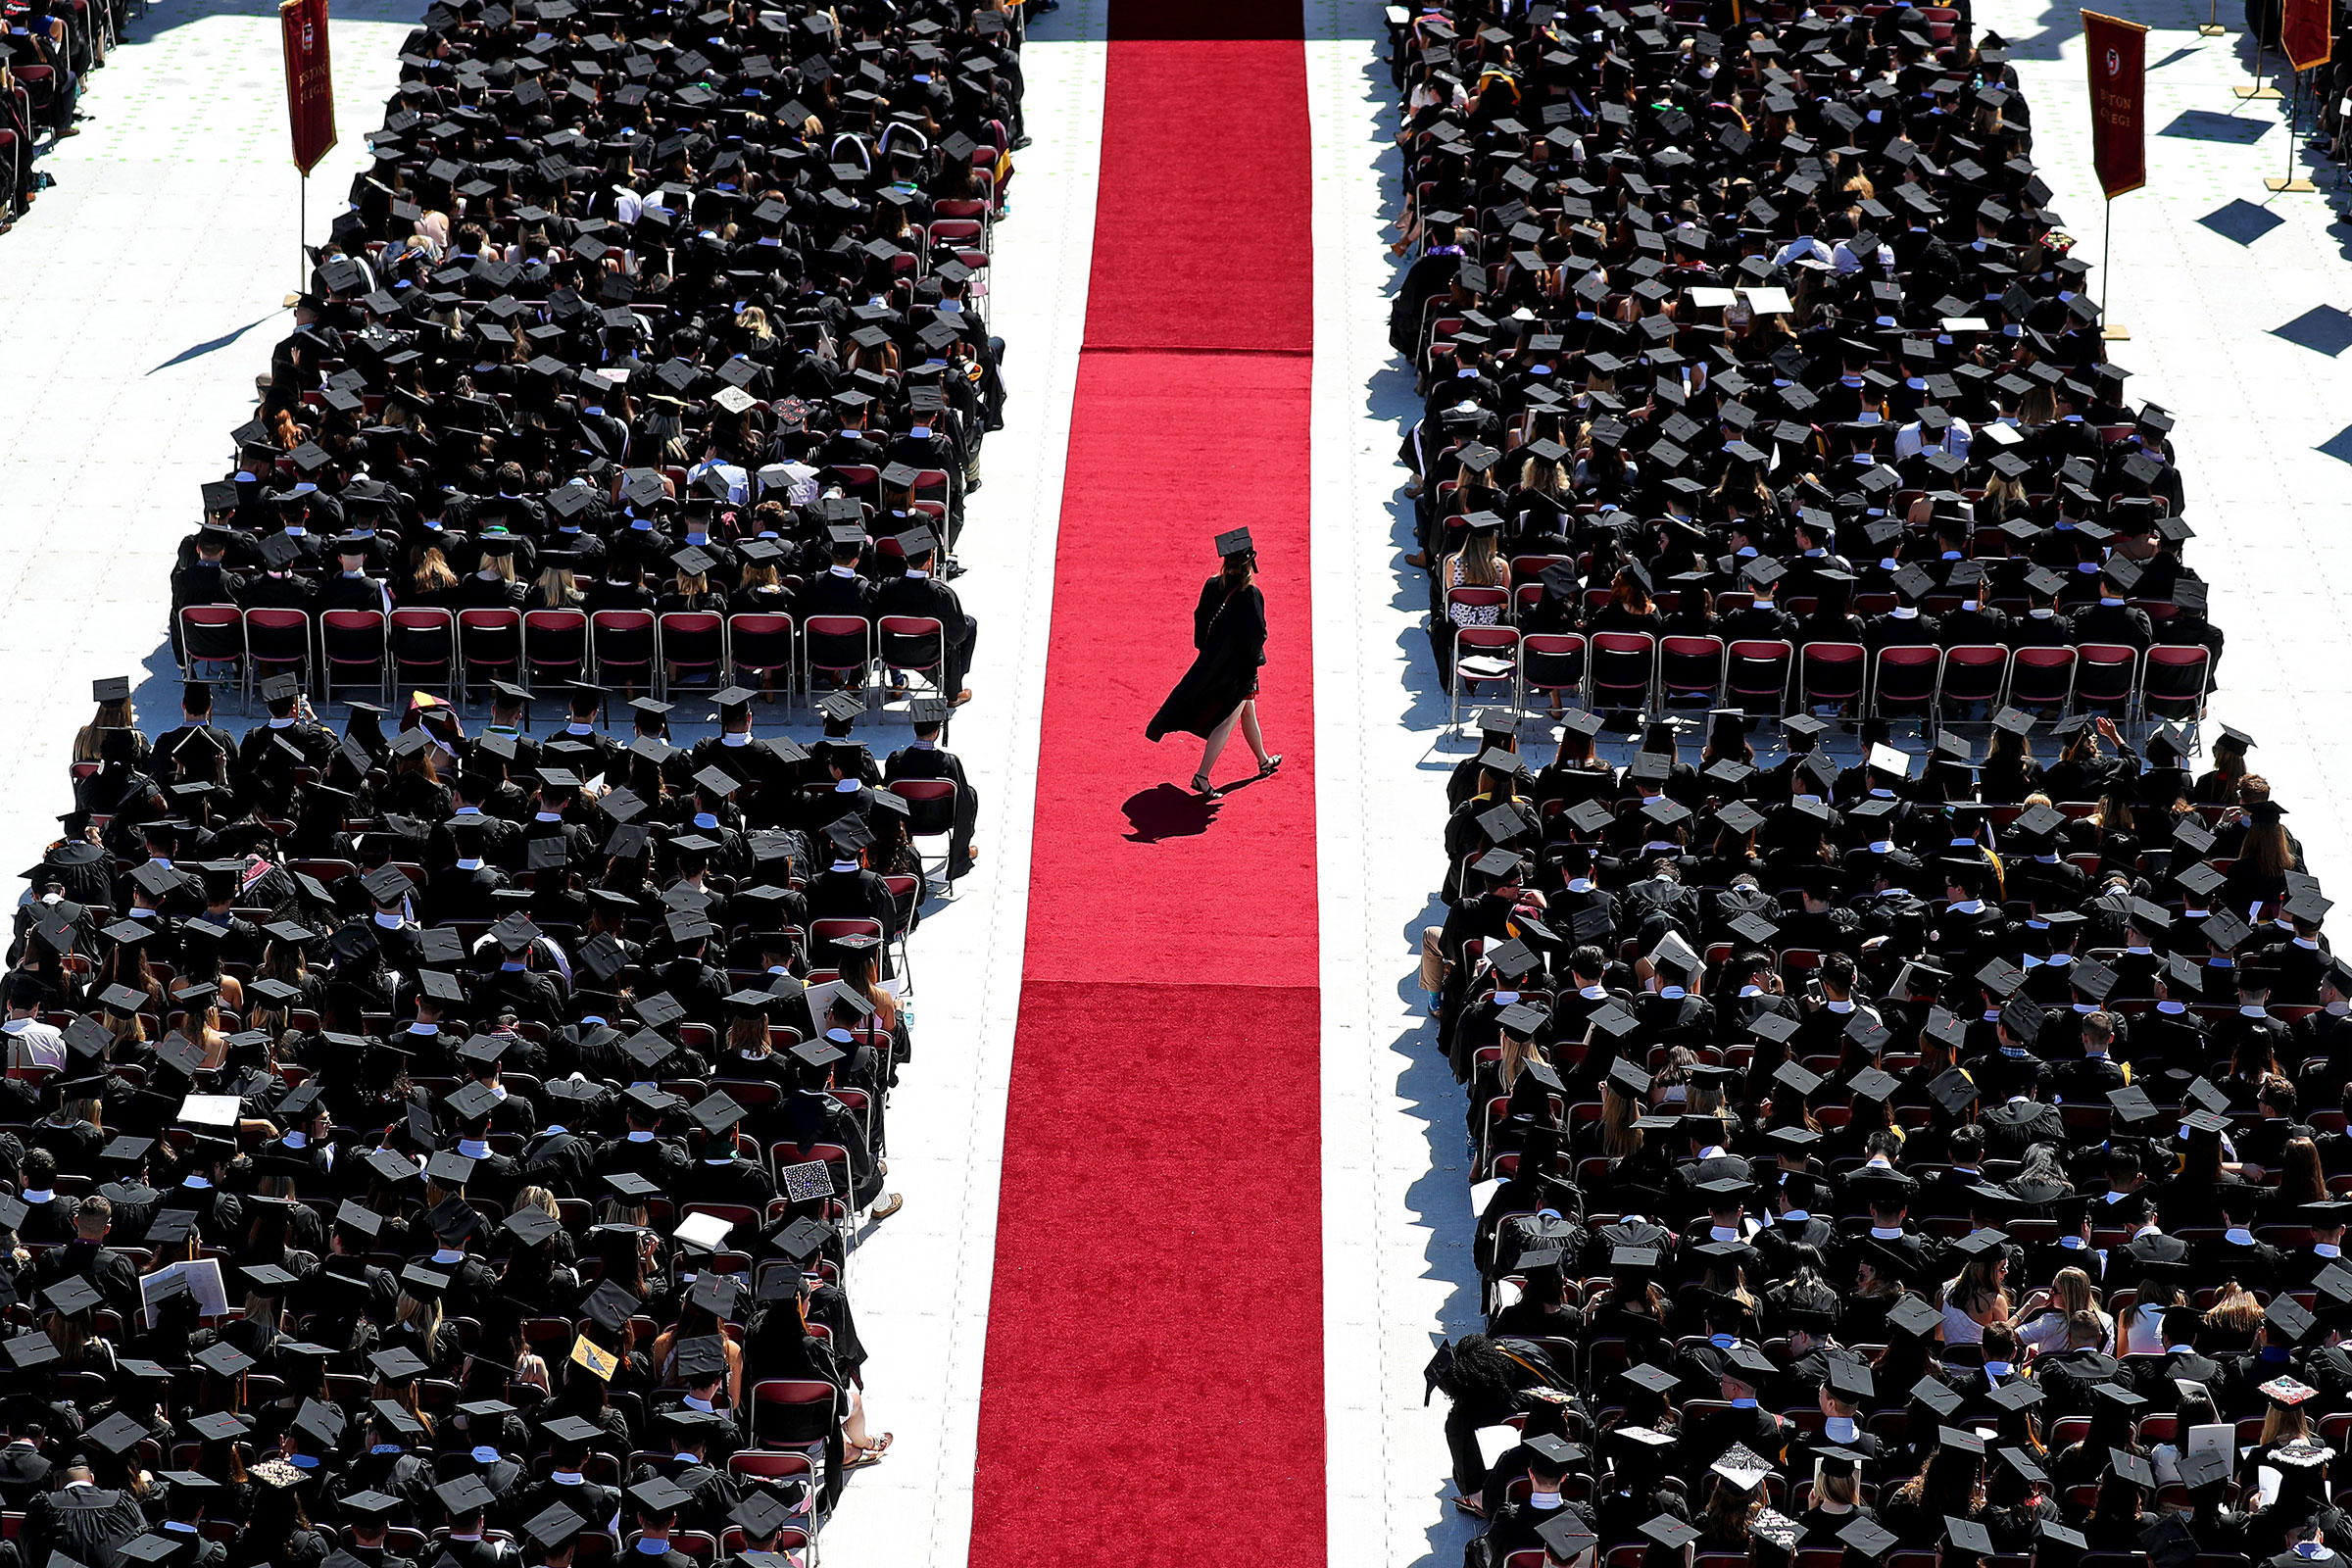 A graduate crosses the red carpet at Boston College's commencement on May 21, 2018